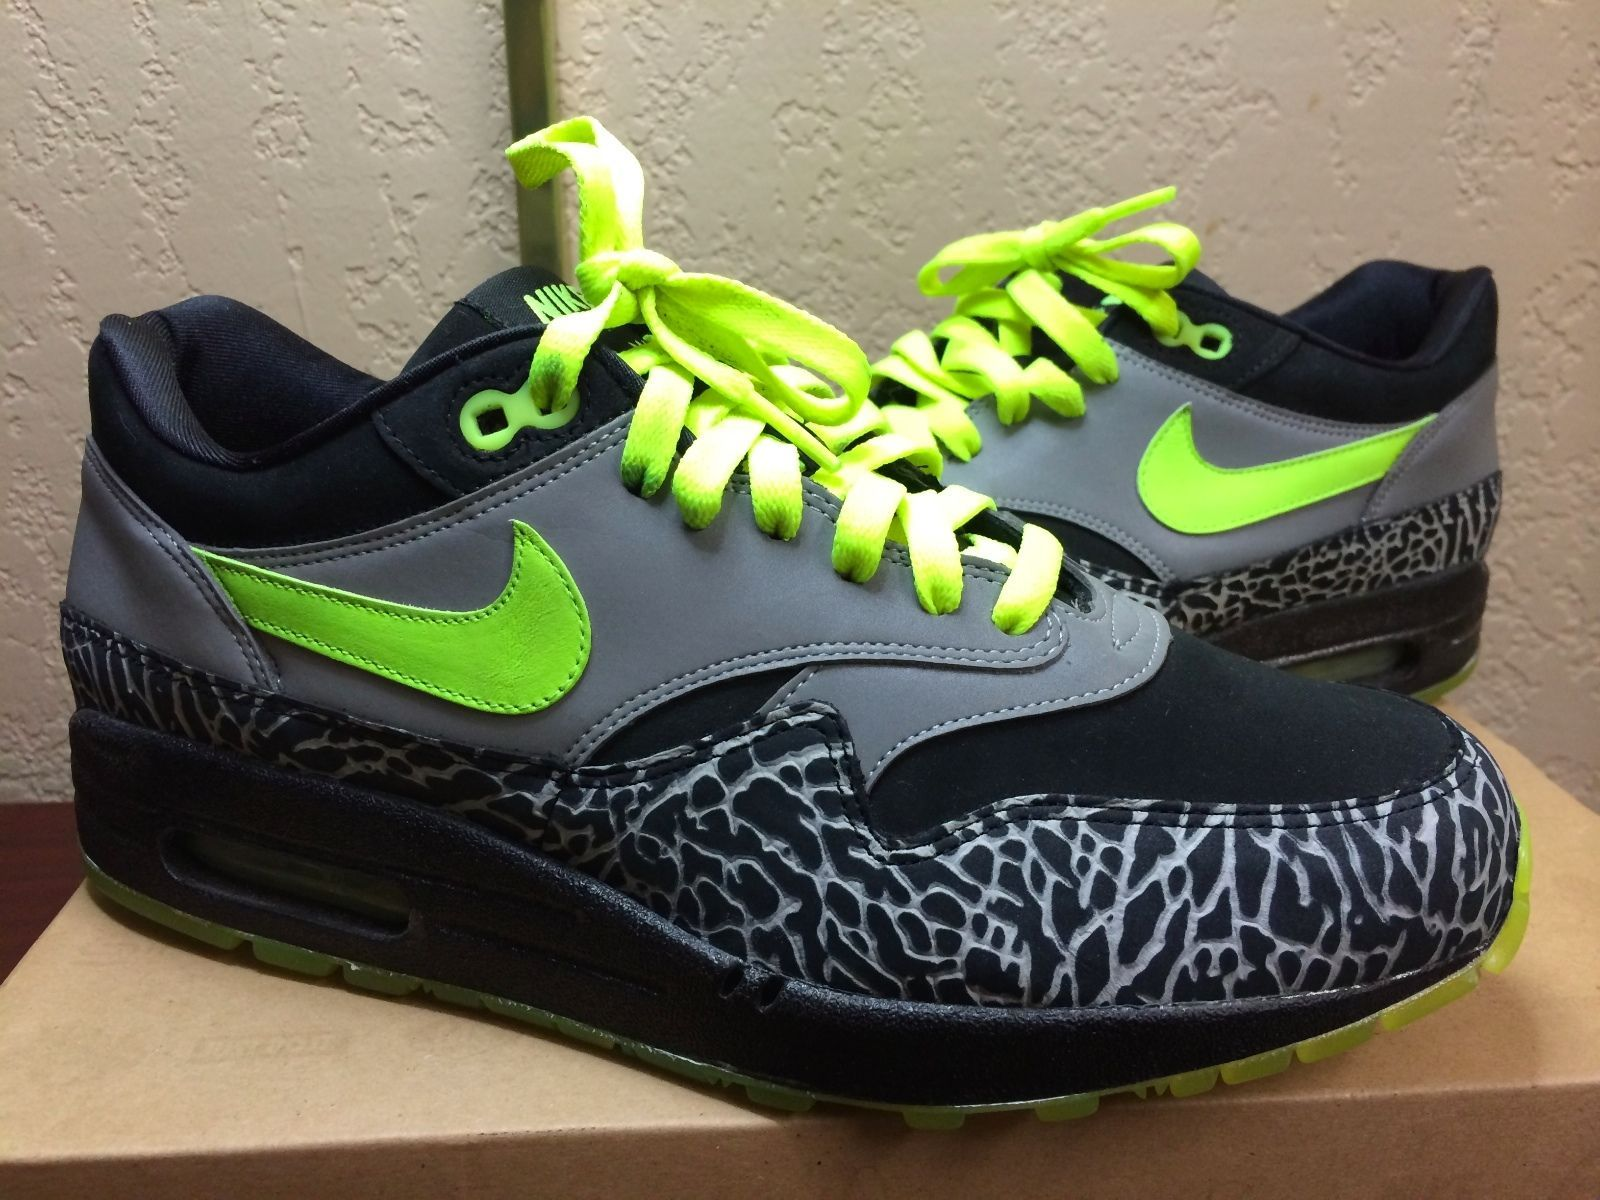 21a8ee5fcd ... norway nike air max 1 112 size 8 5 atmos beast safari tiger animal  patta amsterdam